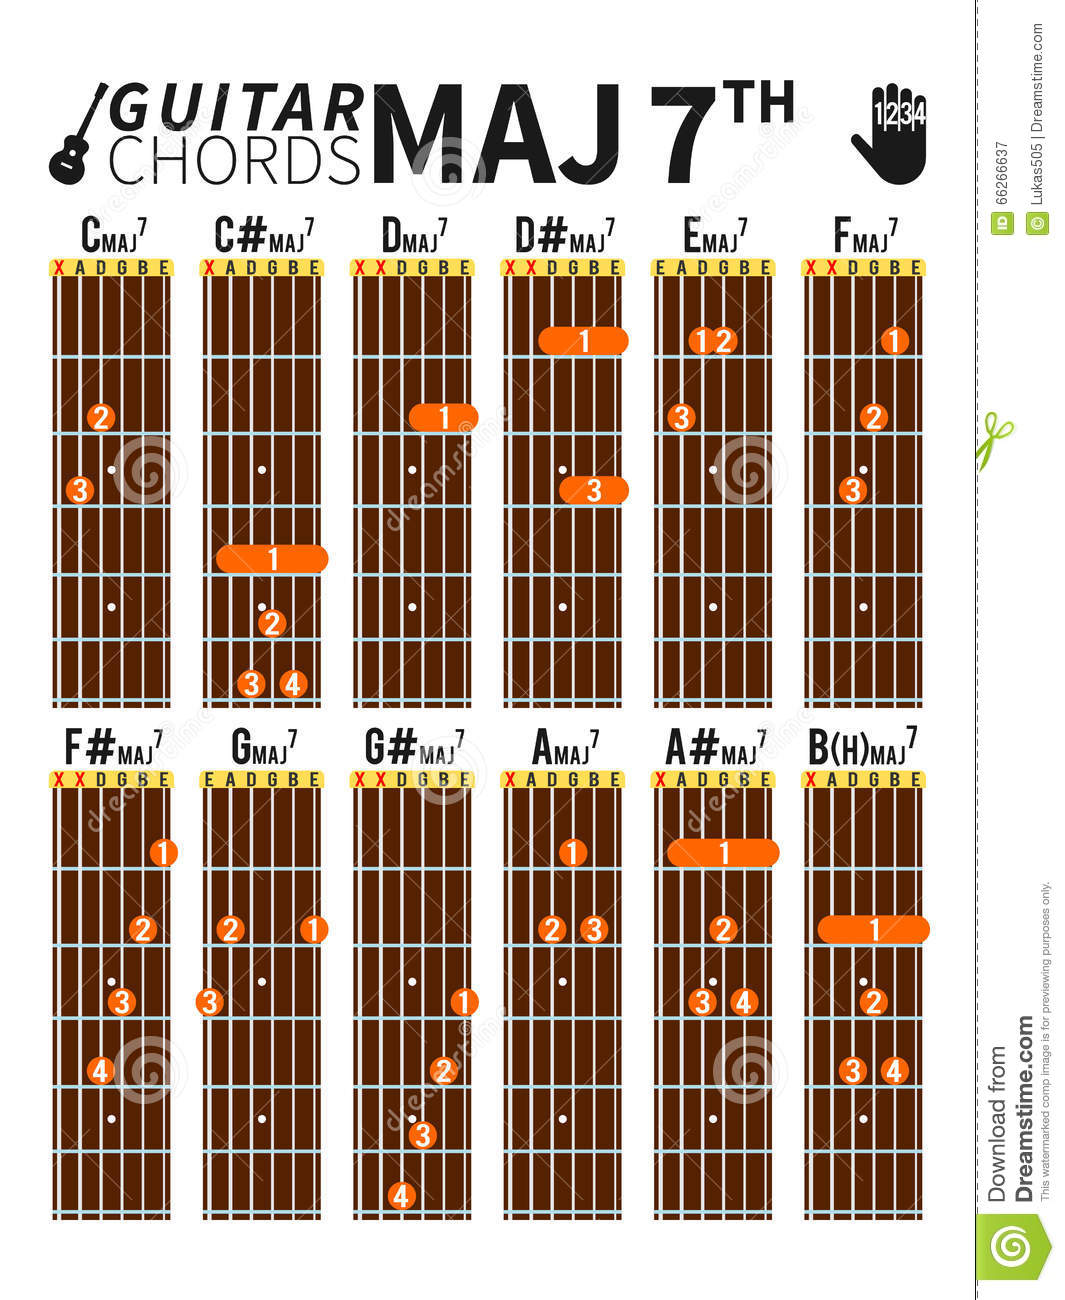 Major Seventh Chords Chart For Guitar With Fingers Position Stock